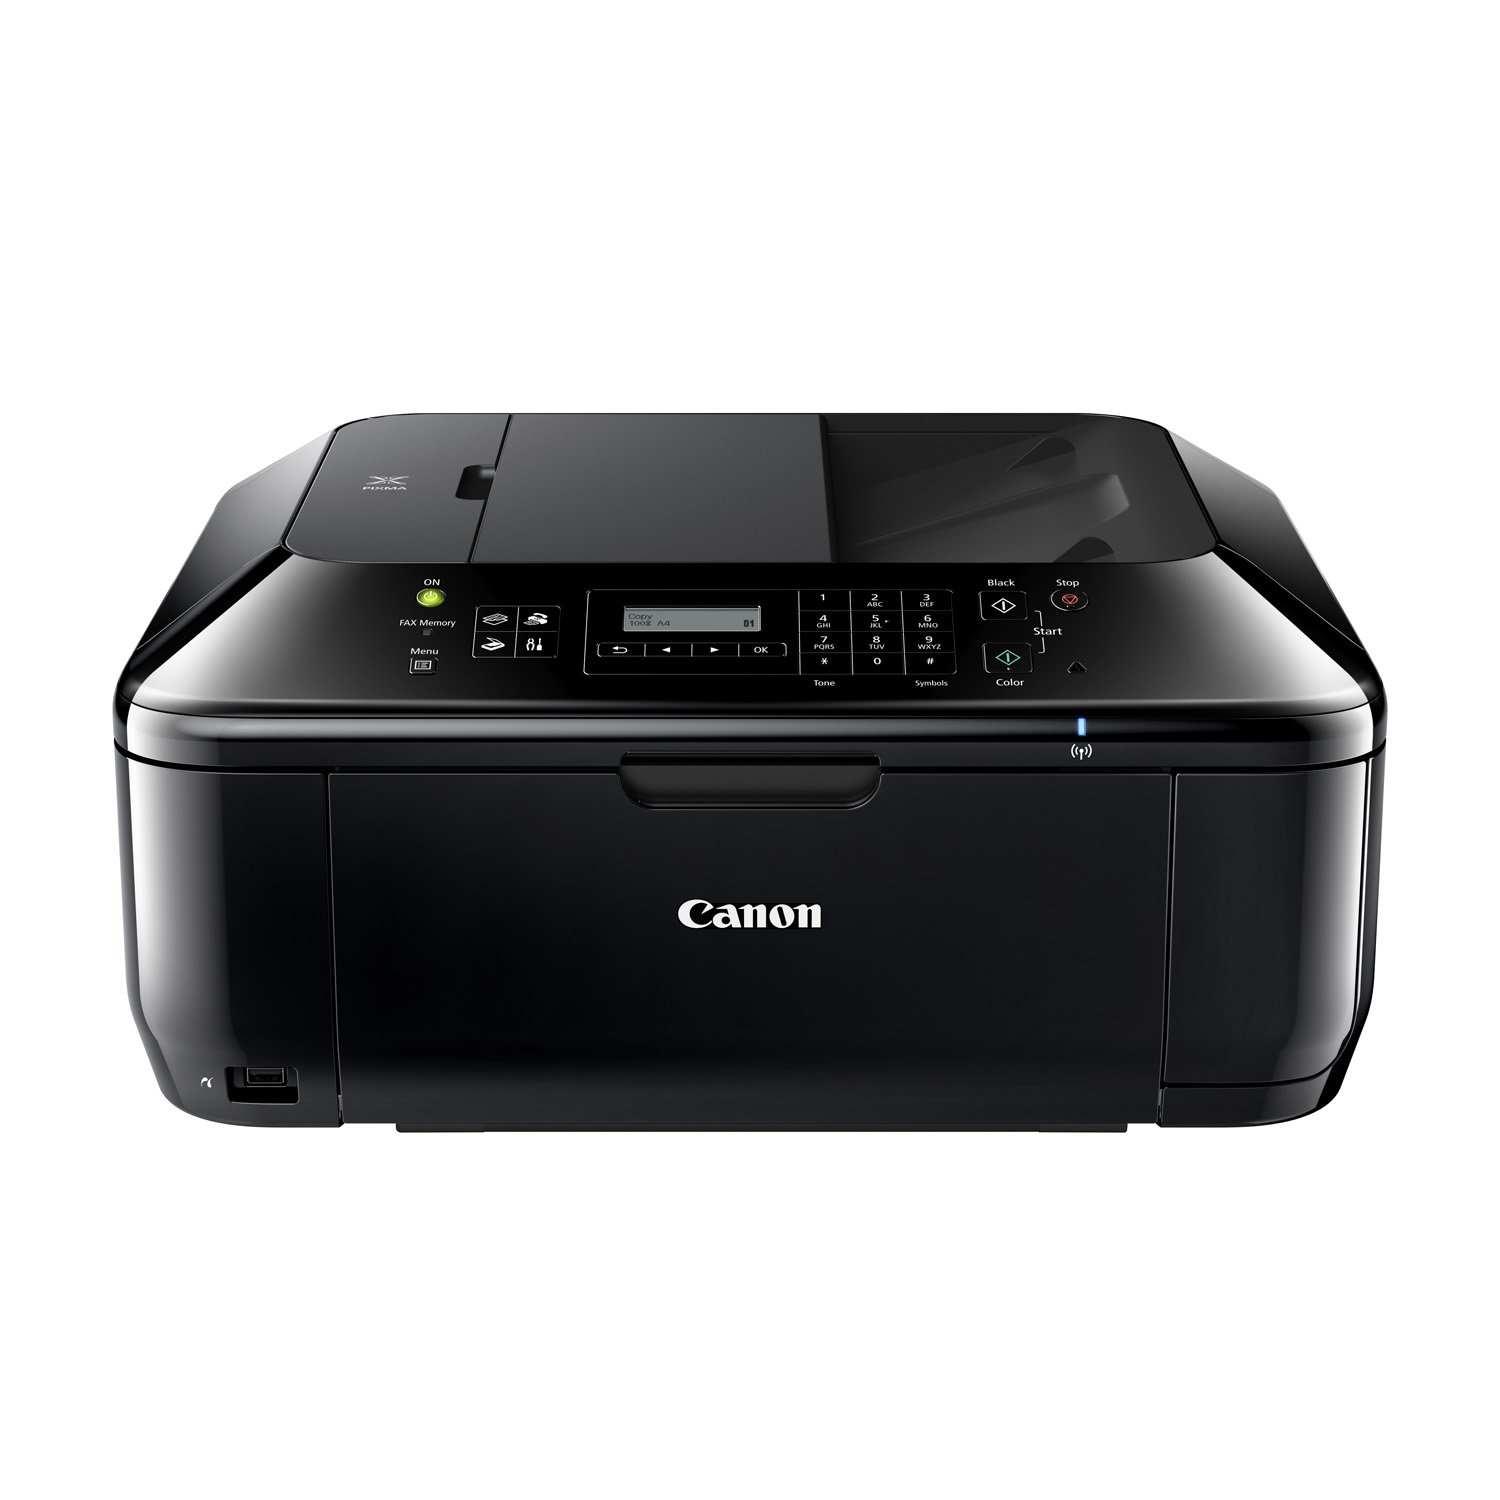 MX432 PRINTER DRIVER WINDOWS 7 (2019)